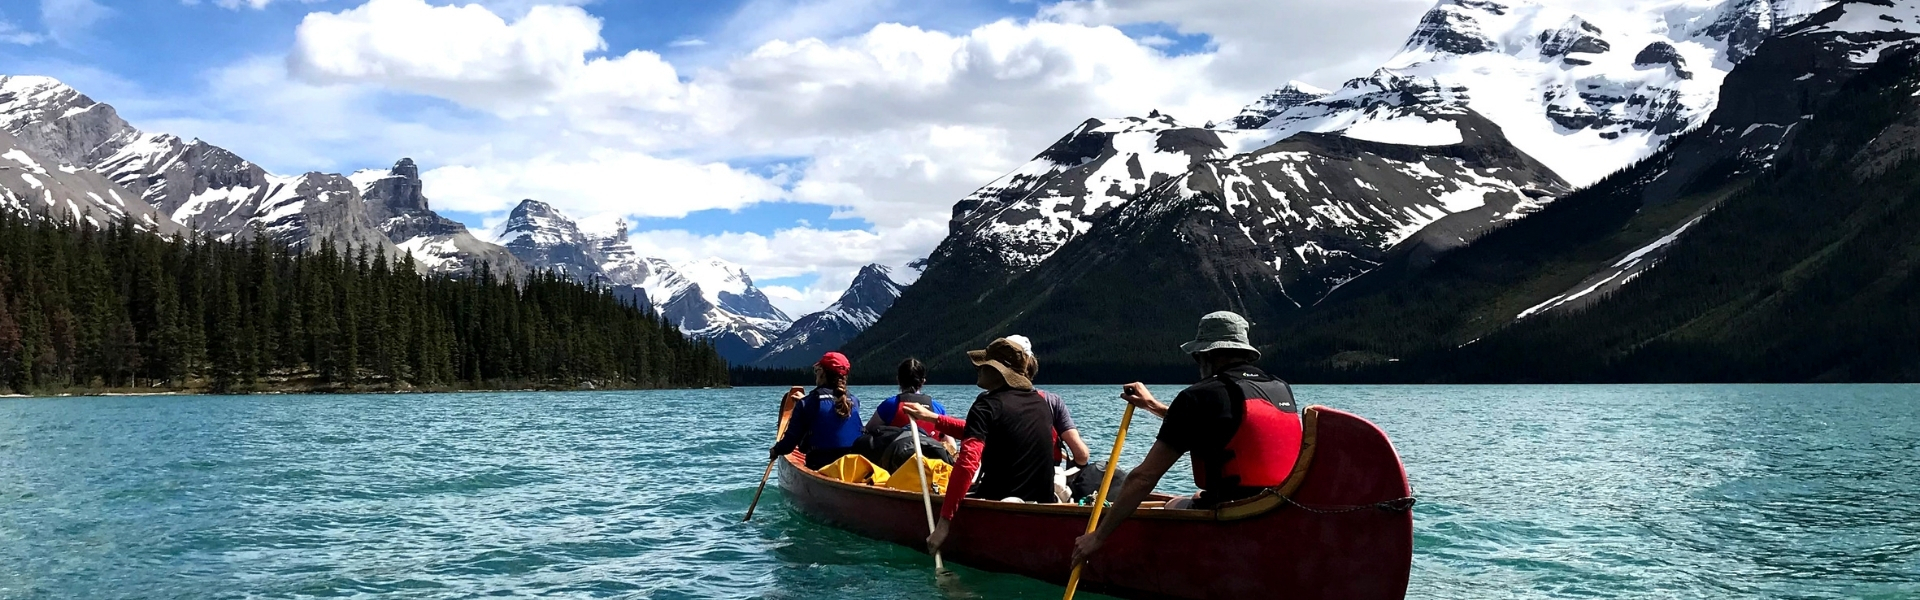 Photo of large red canoe being paddled on lake in the Rocky Mountains.